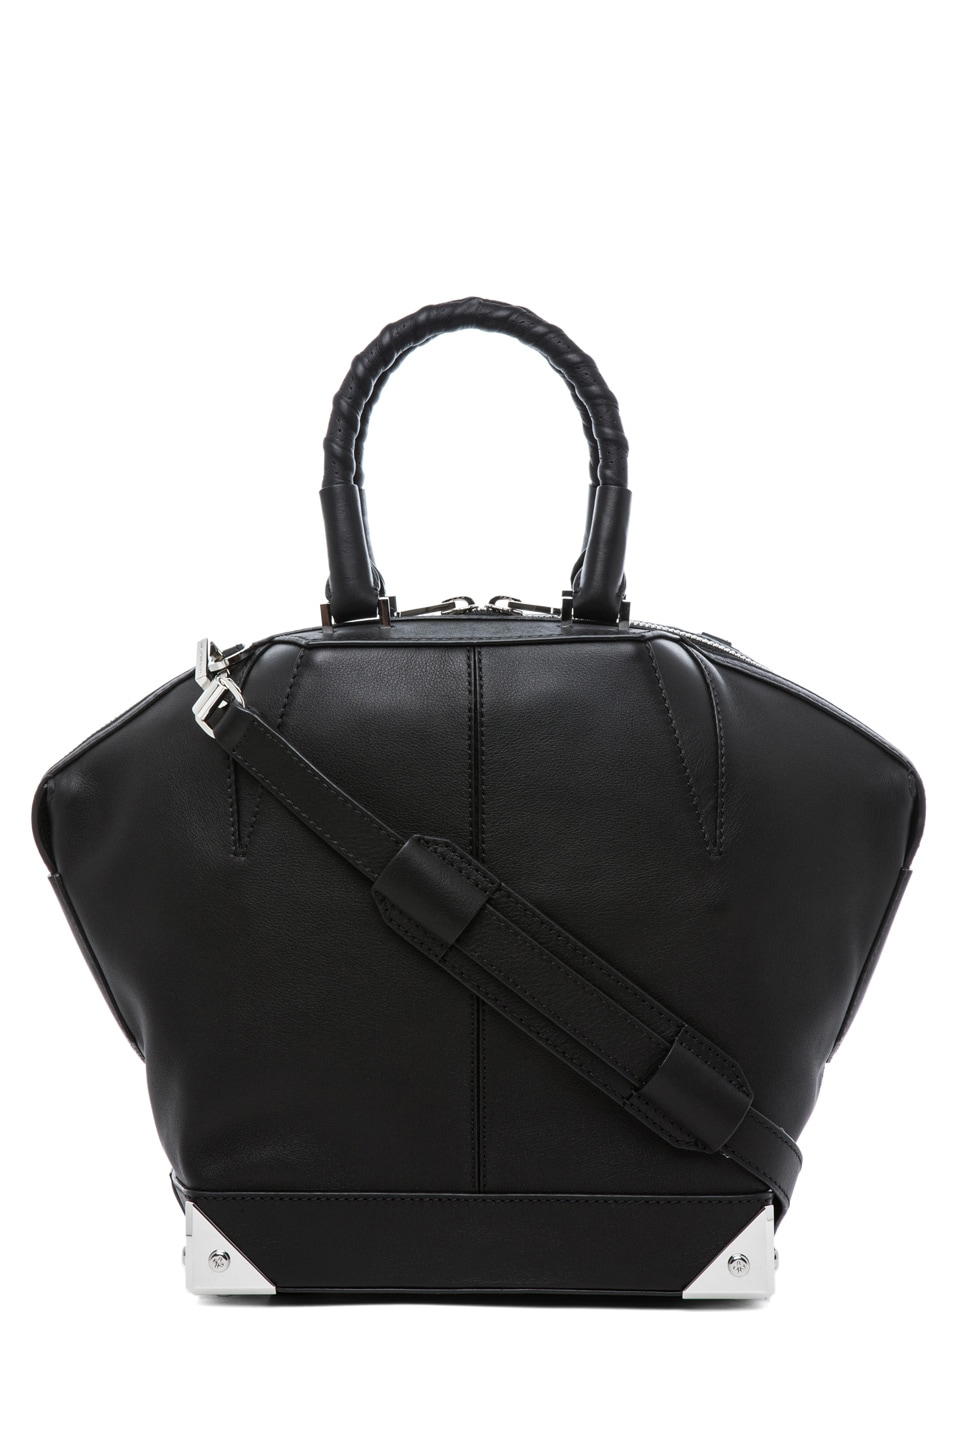 Image 1 of Alexander Wang Small Emilie Satchel with Bike Handle in Black